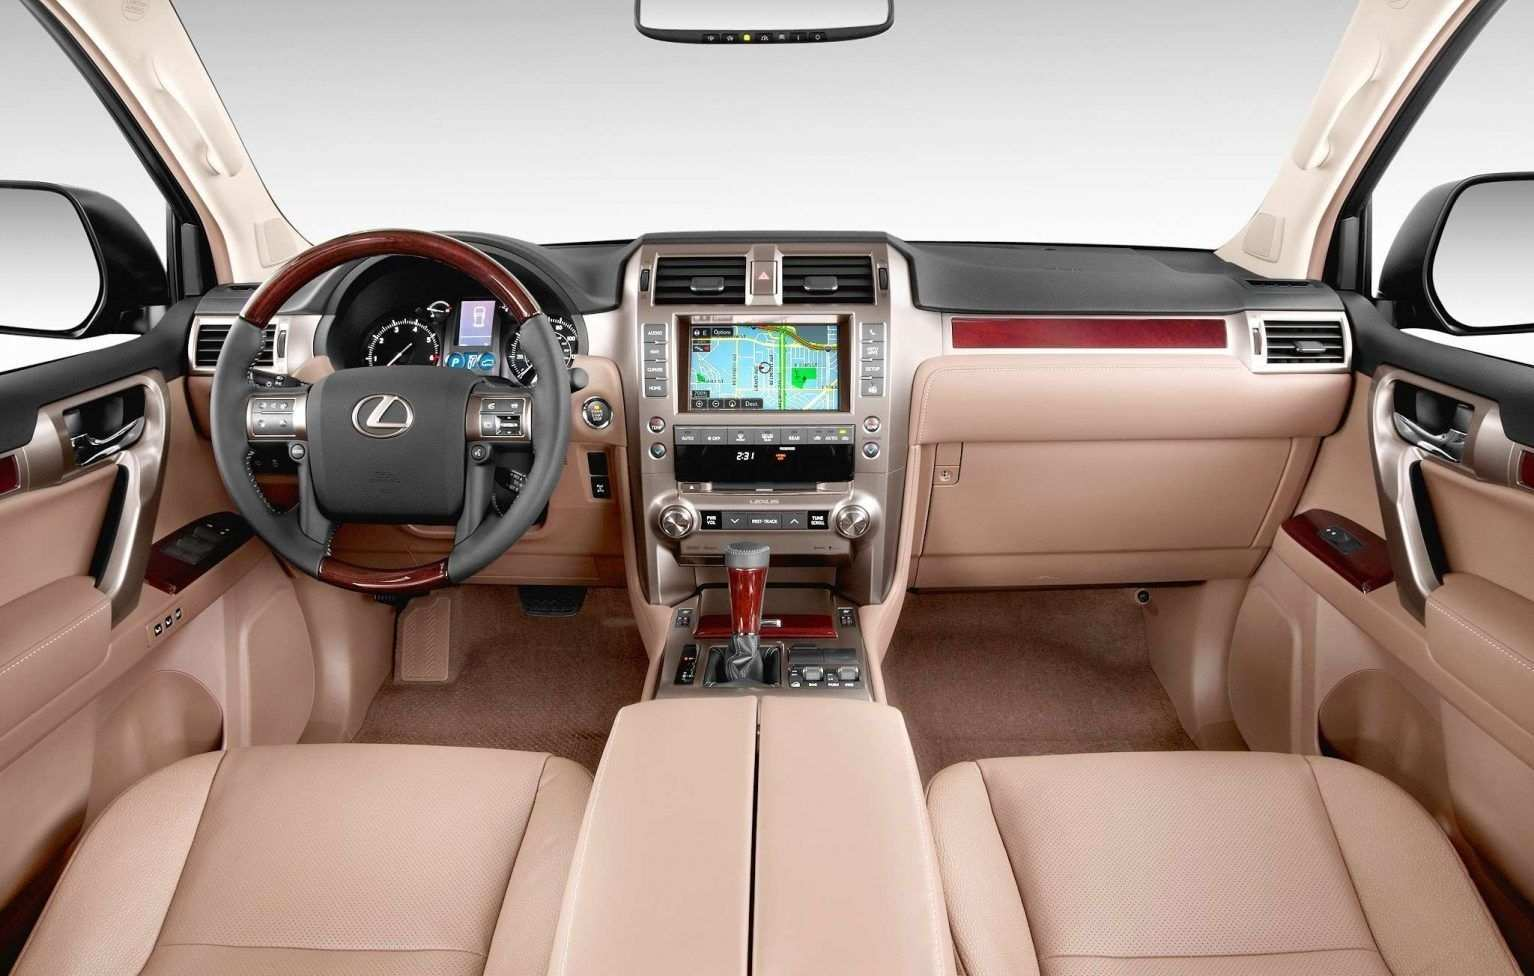 58 Great New Lexus Gx 2019 Release Date Interior Pricing by New Lexus Gx 2019 Release Date Interior